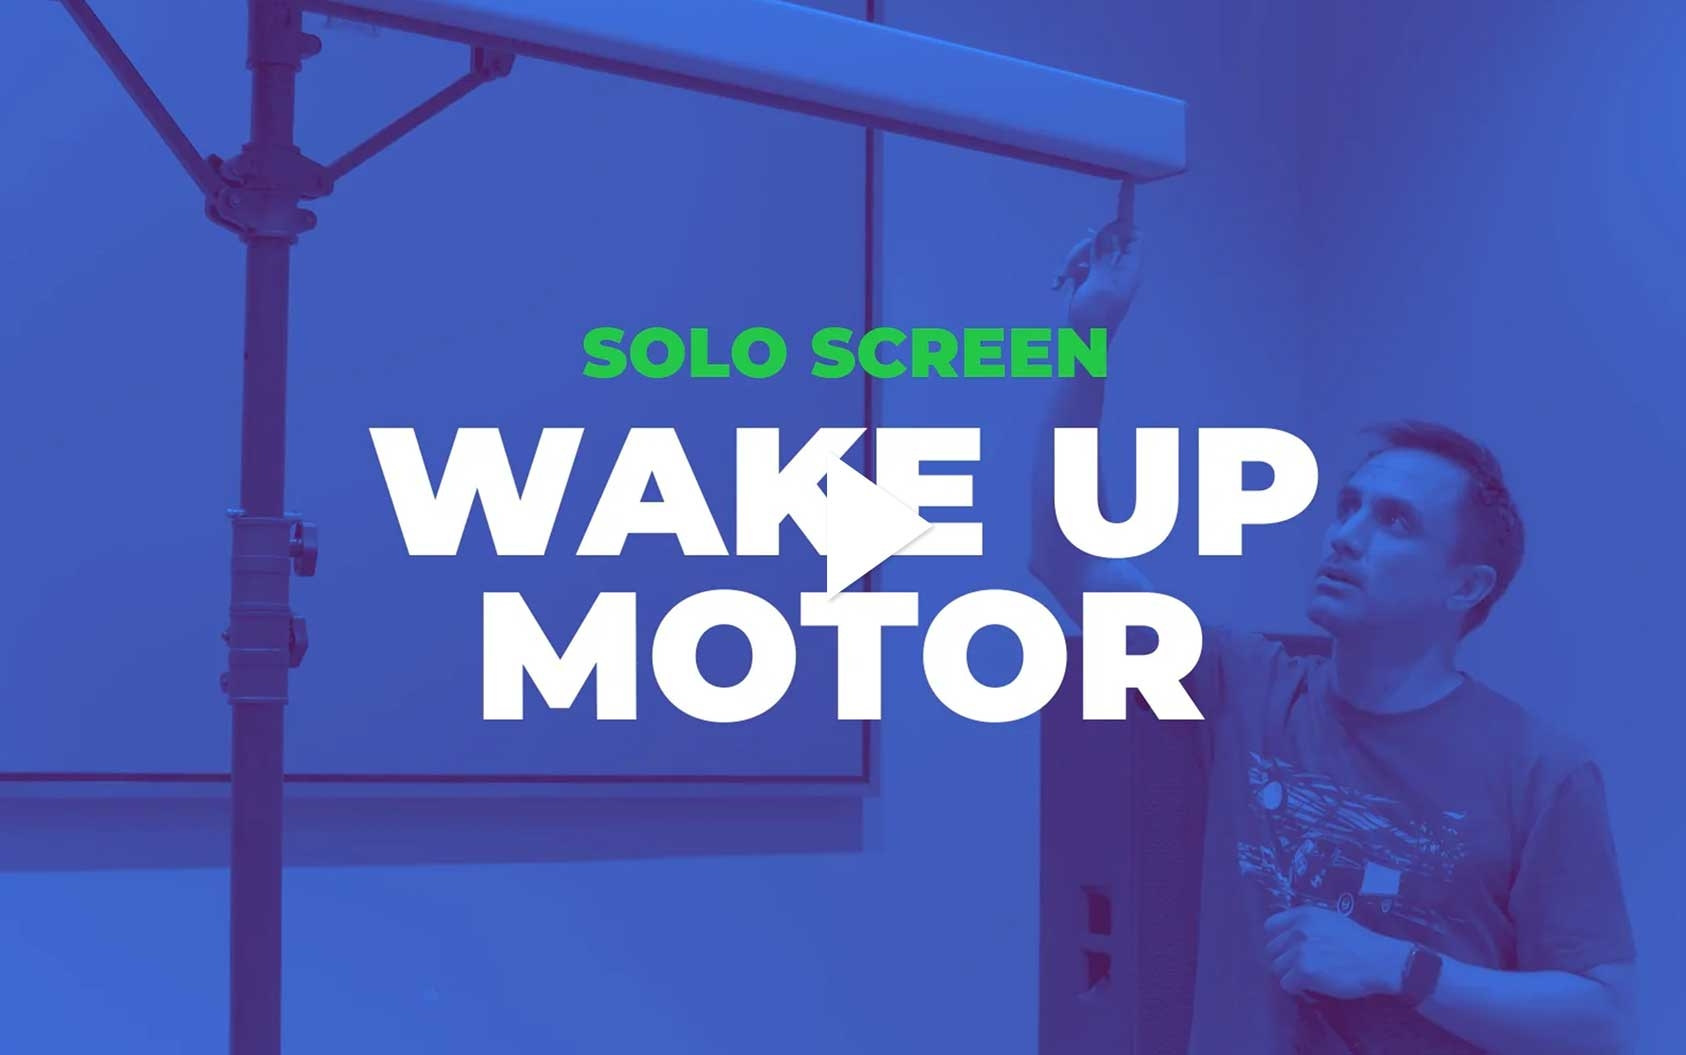 Solo - How to Wake Up the Motor